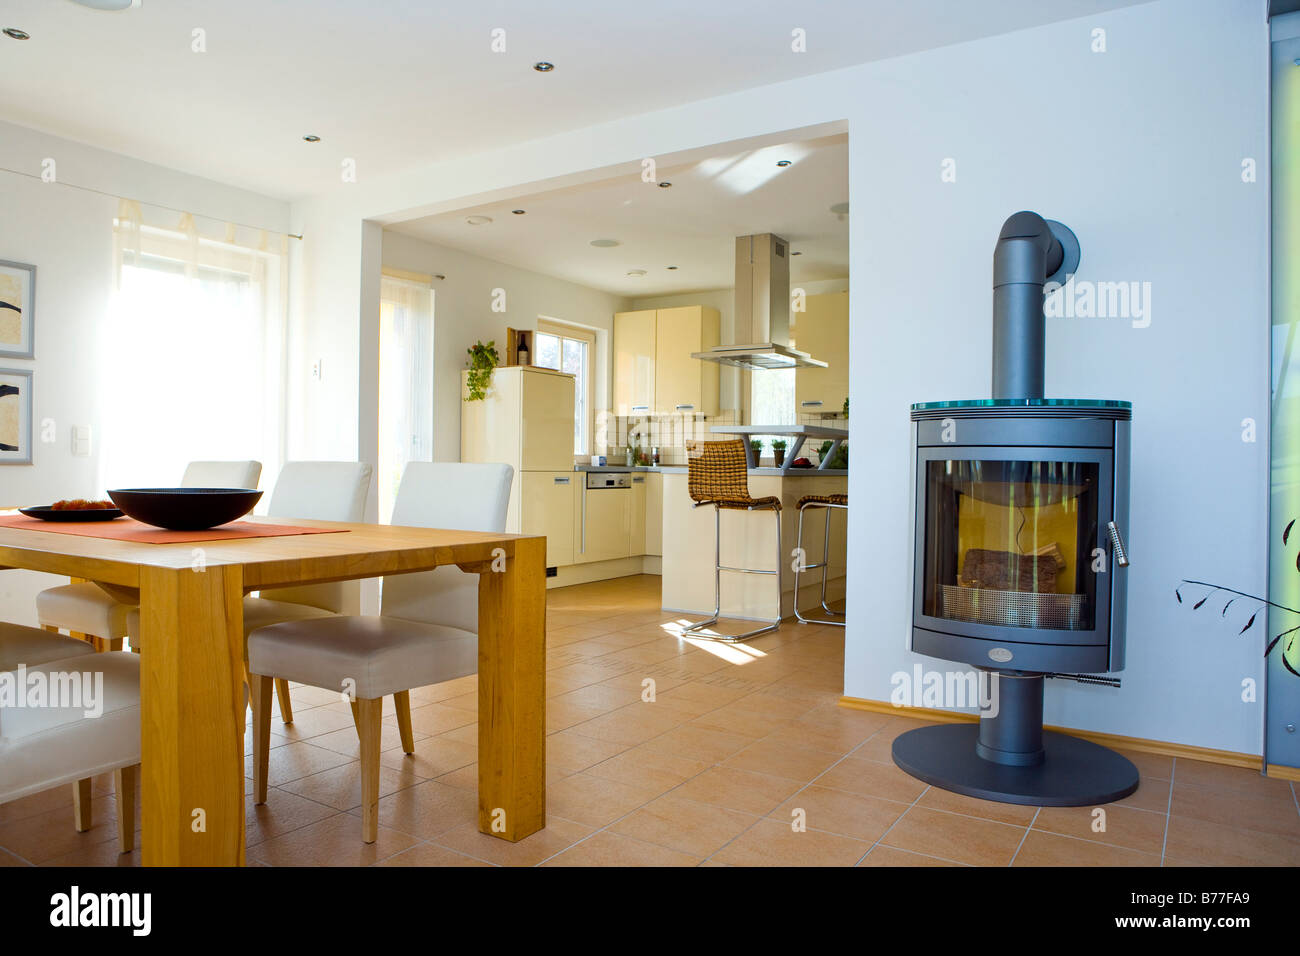 Modernes Esszimmer Modernes Esszimmer Modern Dining Room Stock Photo 21678673 Alamy